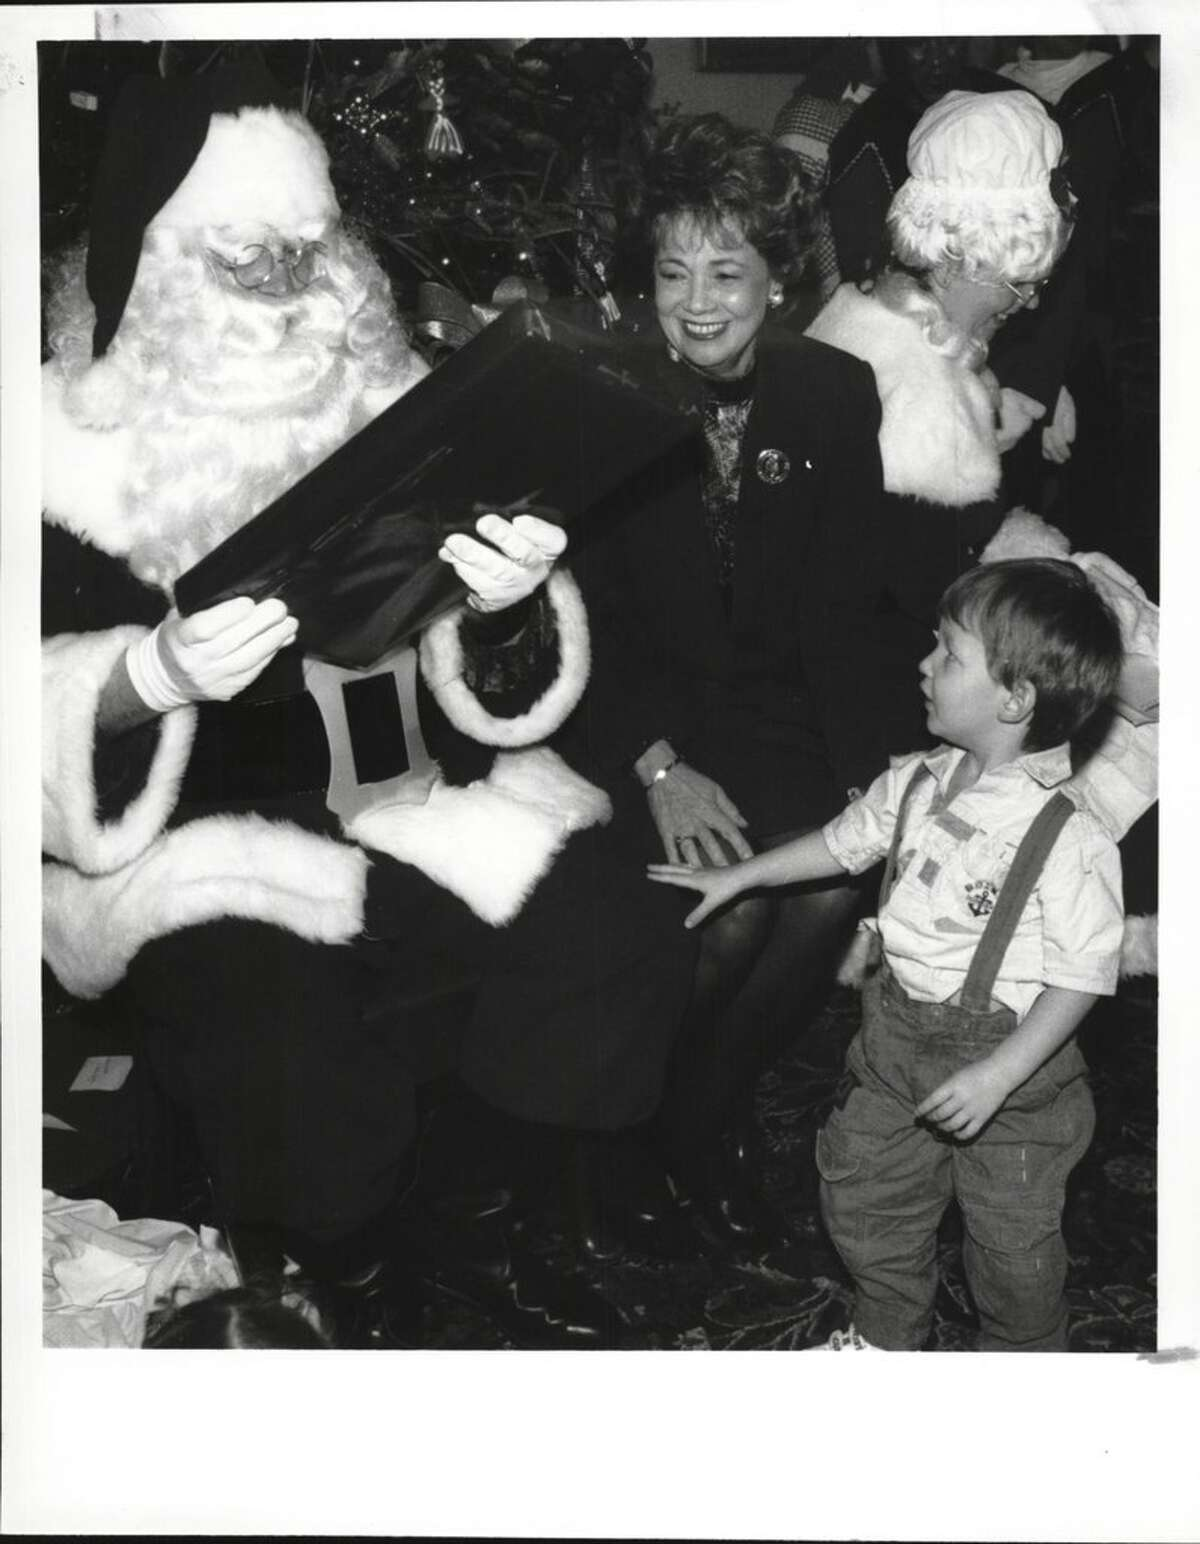 Albany, New York - Santa Claus (Jay North) talks with 2 1/2 year old Andrew Gonyea of Albany from the Albany Girls Club group as Matilda Cuomo watches during her annual Christmas party for kids at the Governor's Mansion. December 18, 1992 (Paul D. Kniskern, Sr./Times Union Archive)